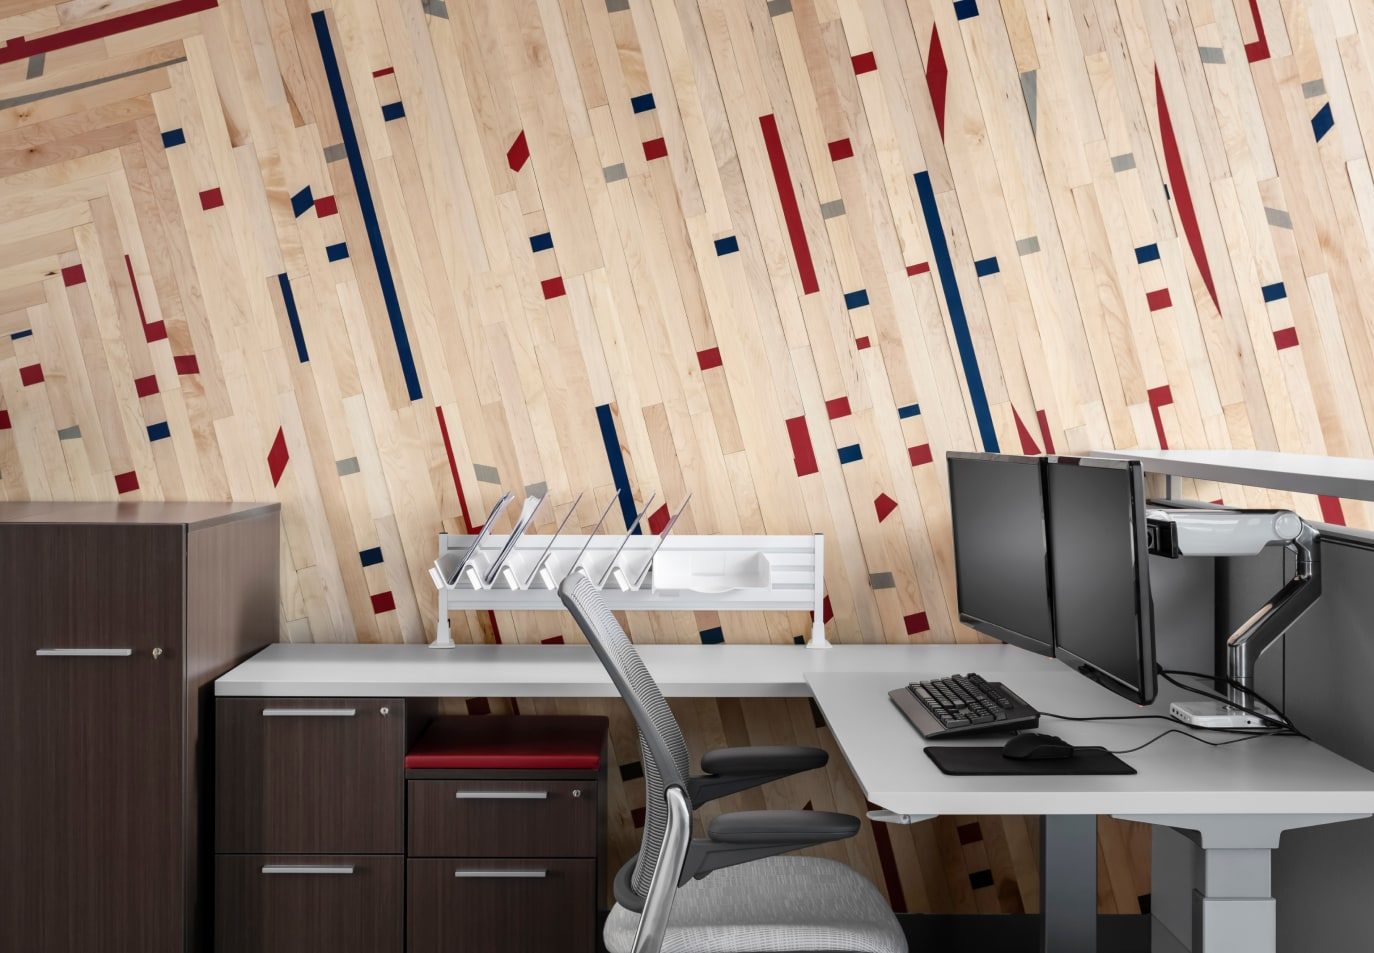 University of Arizona Athletic department office feature wall using Stikwood Fanwall peel and stick custom sports wall.